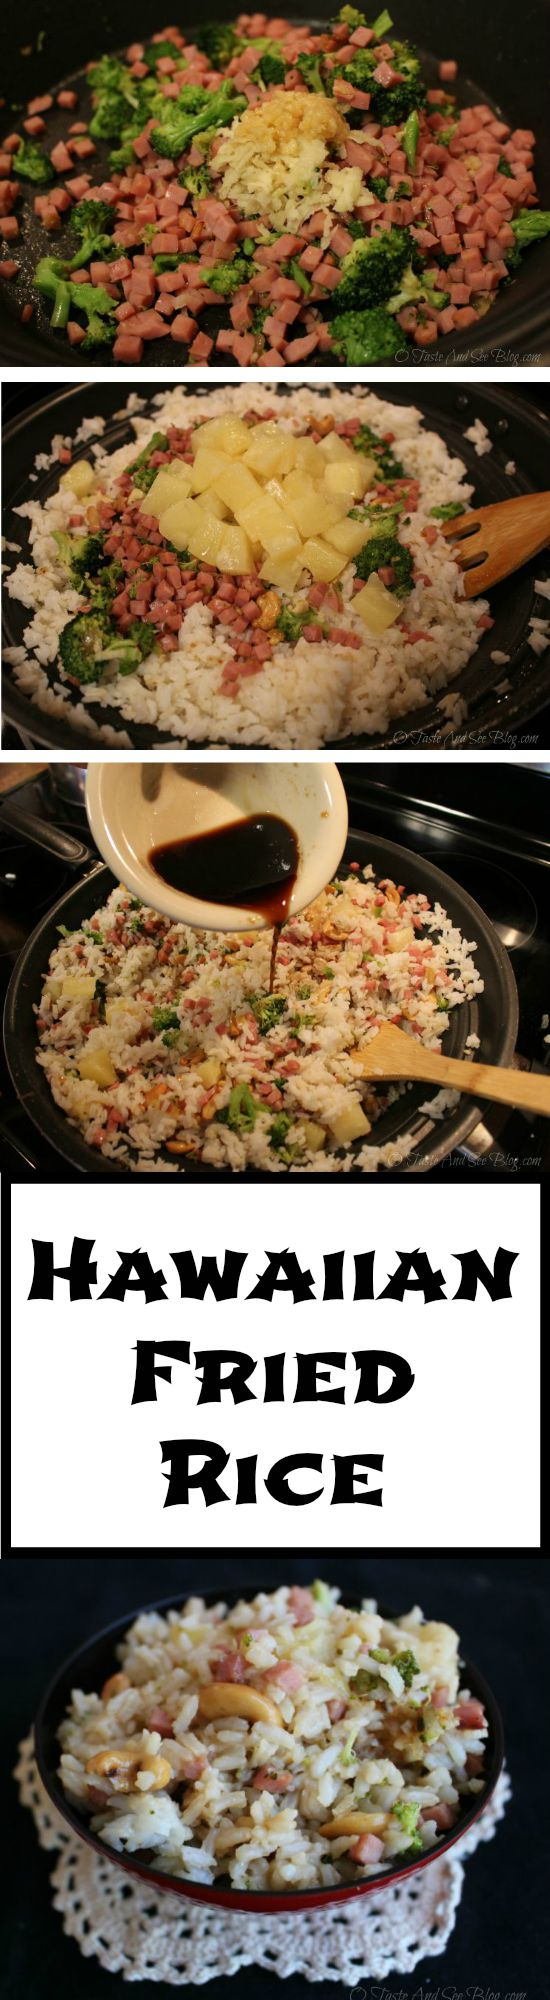 Hawaiian Fried Rice SmithfieldHambassador AD